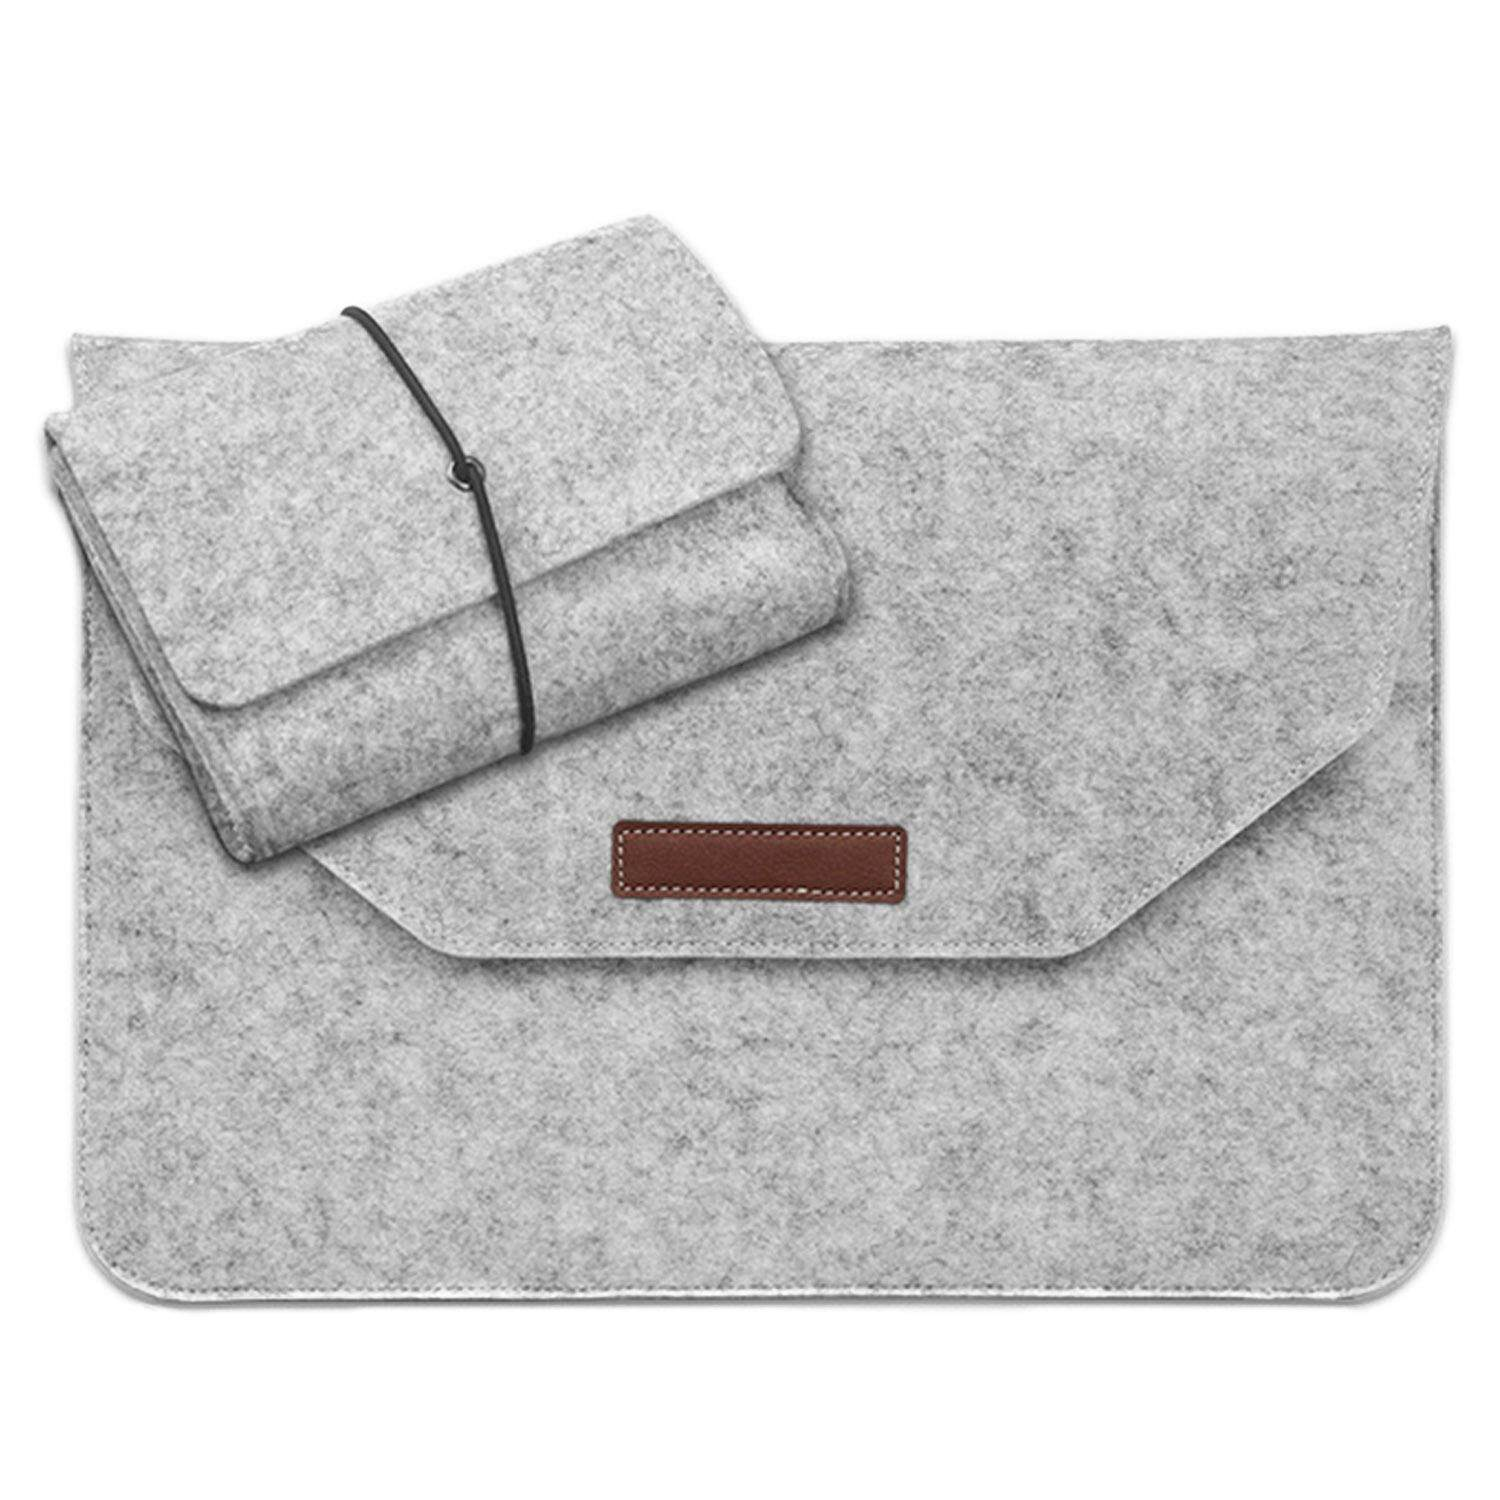 Portable Wear-resistant Protection Felt Sleeve Storage Bag Cover with Charger Pouch Case for Apple Macbook Air Surface Pro iPad Pro Lenove 12inch Laptop